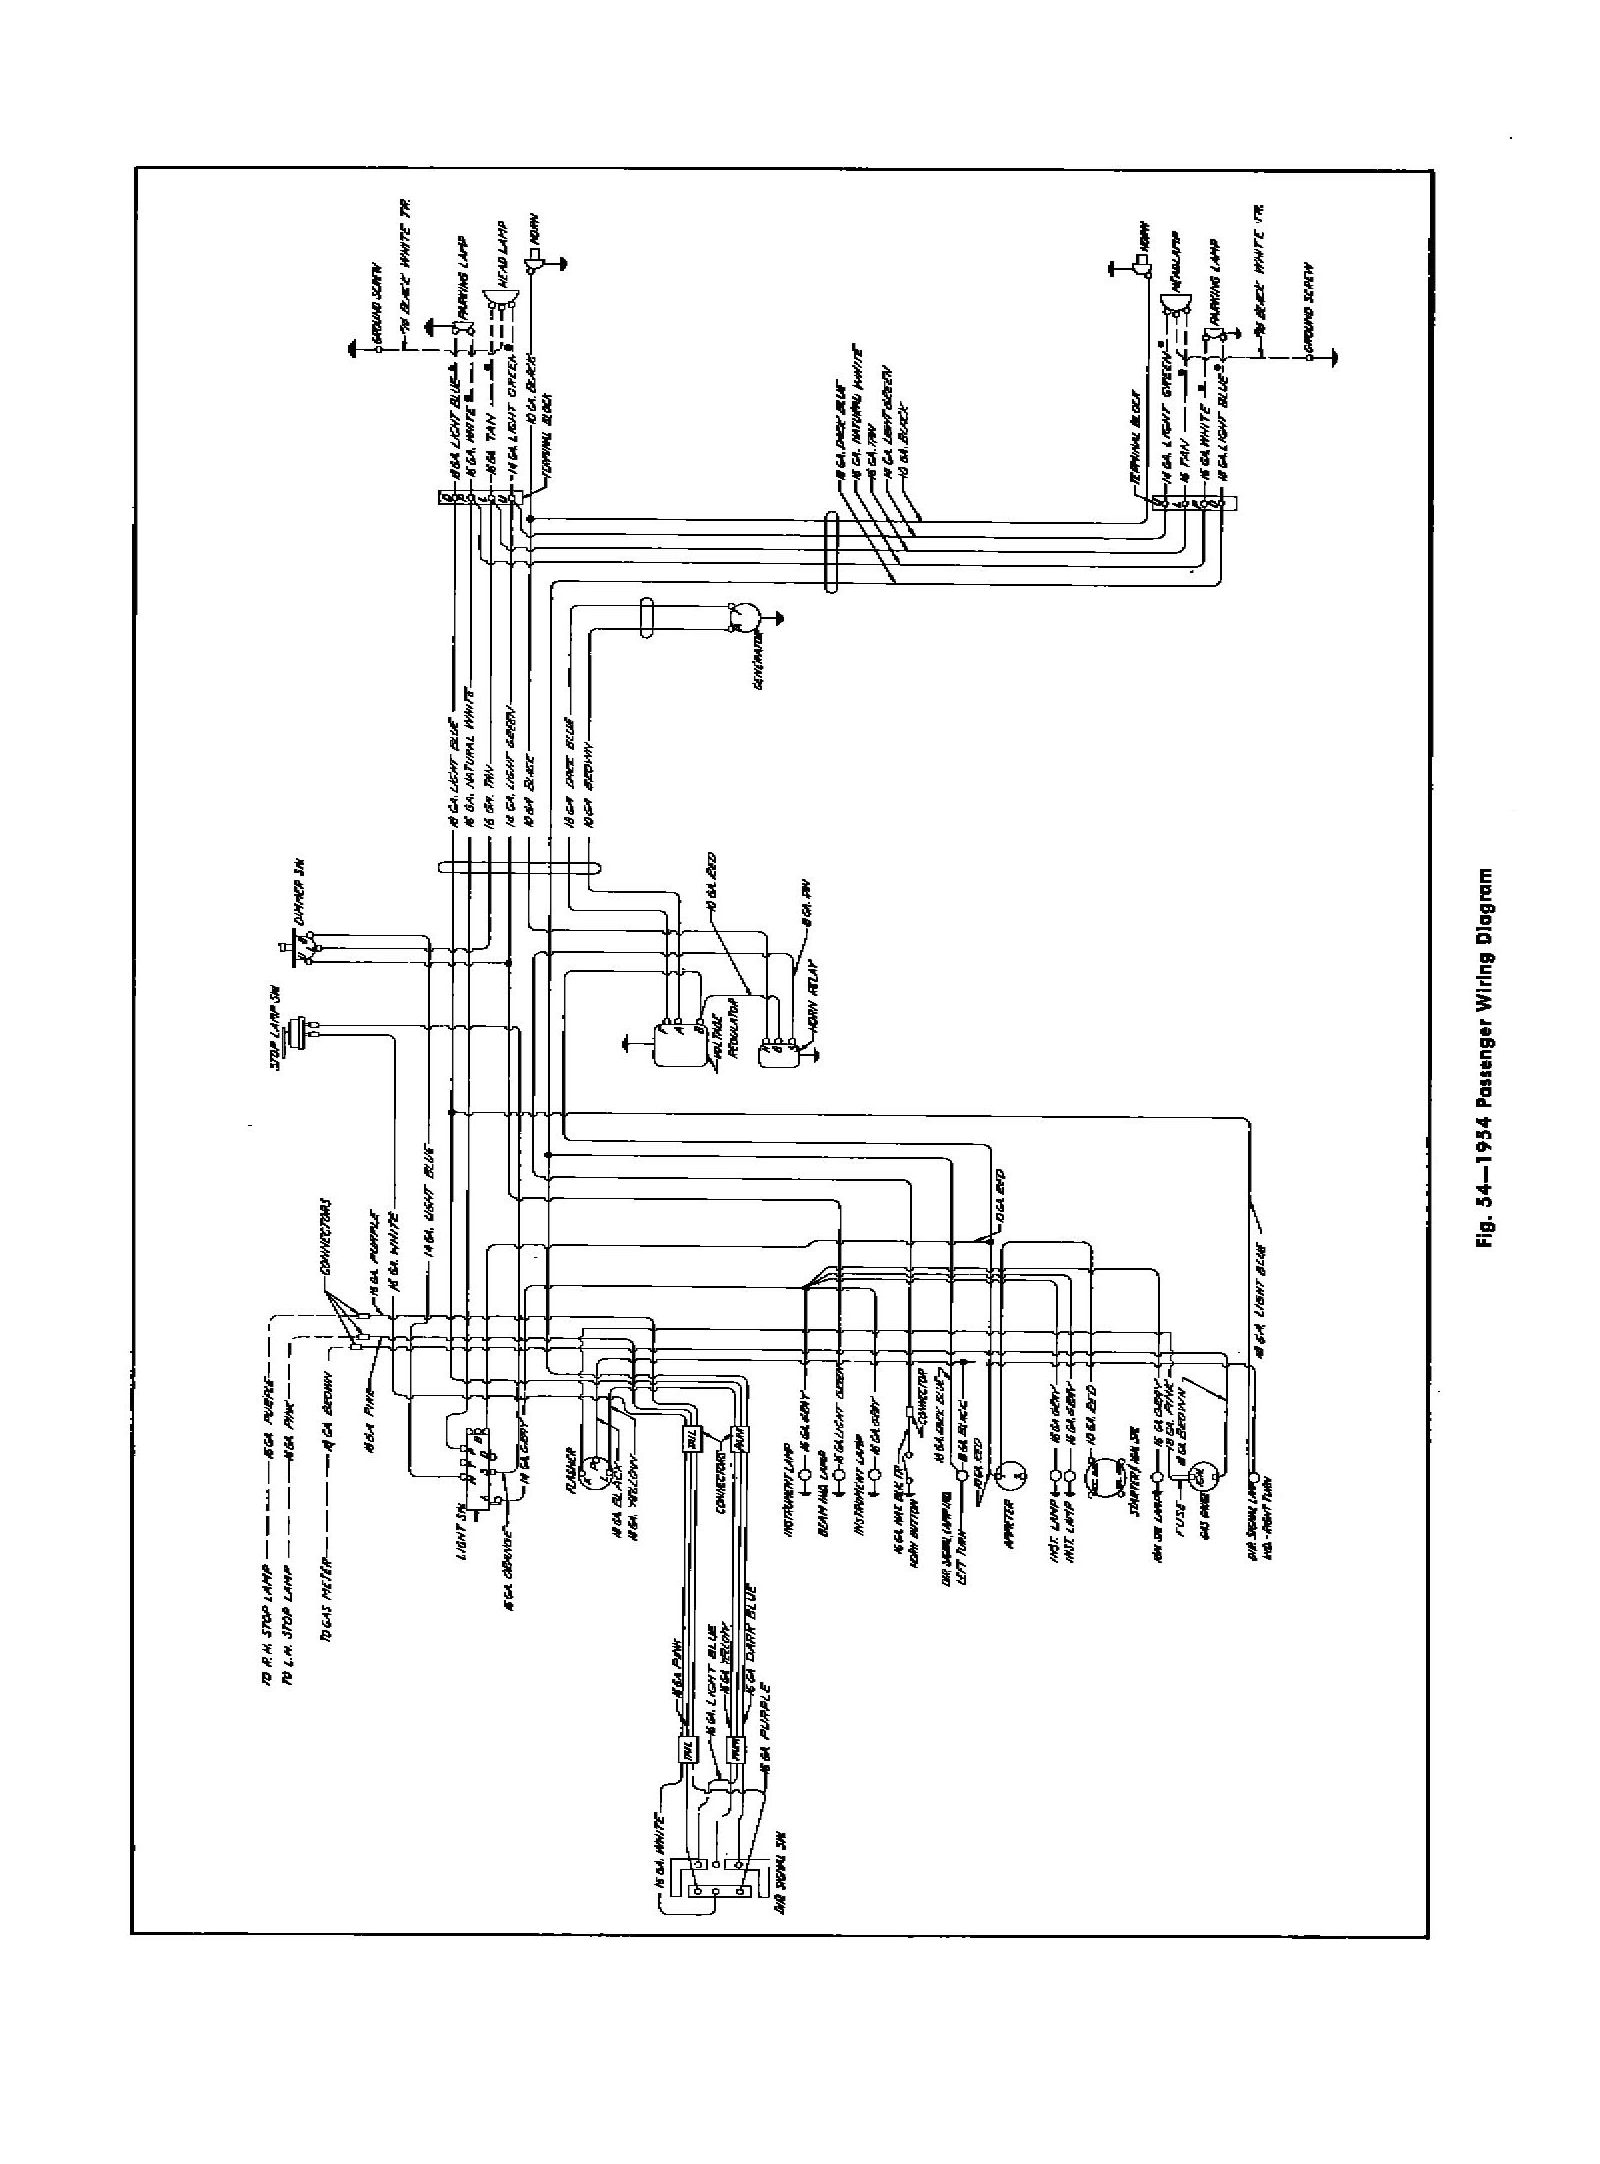 Wiring Manual PDF: 1934 Ford Truck Wiring Diagram